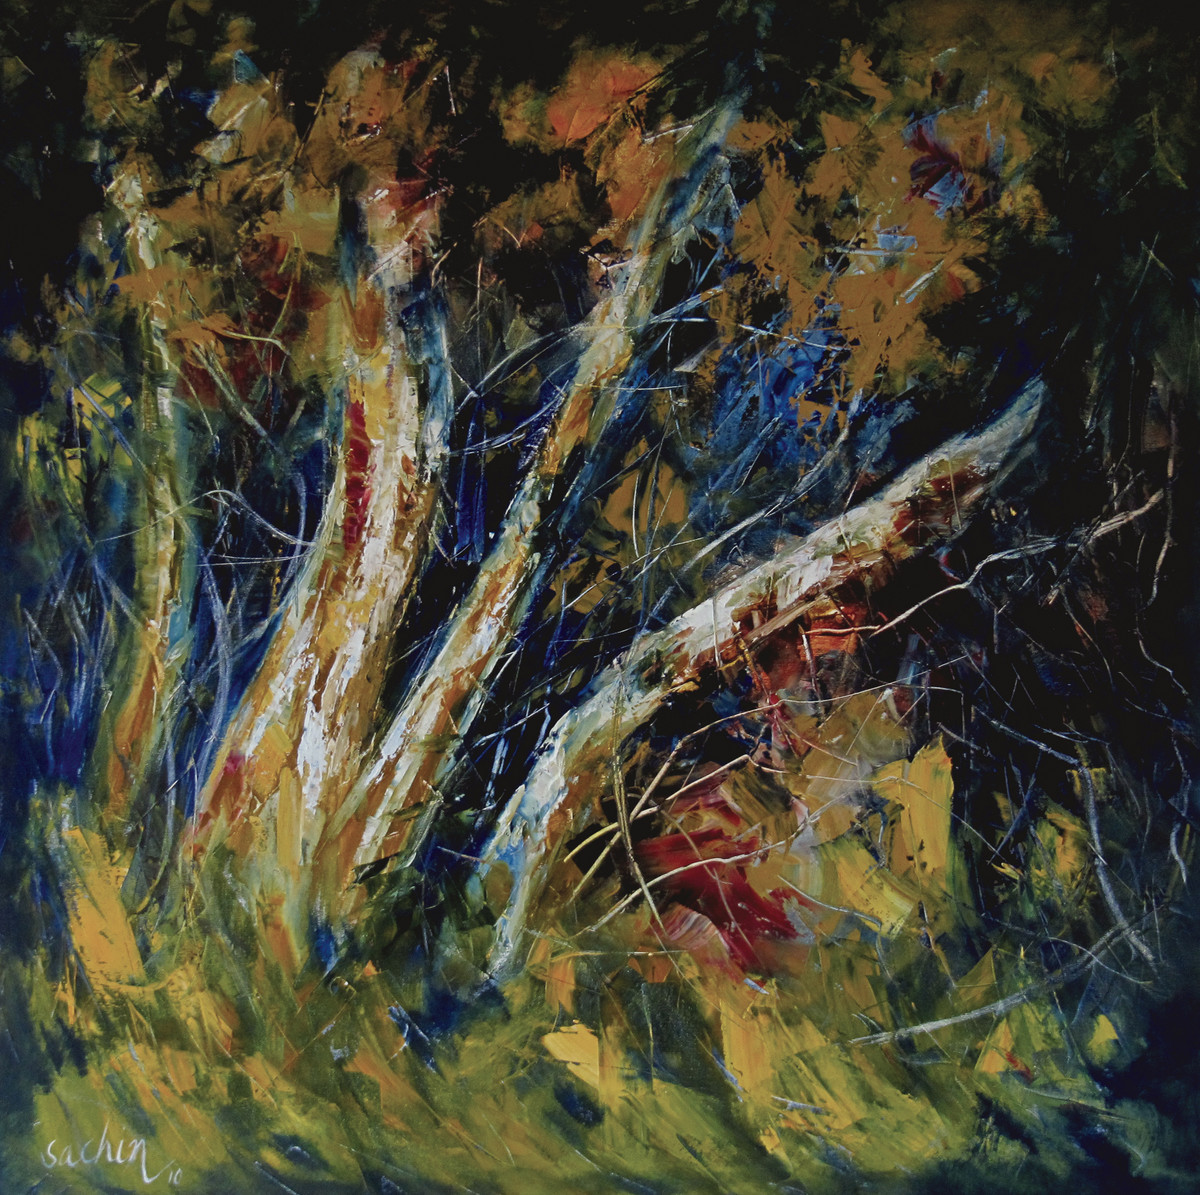 Roots by Sachin Upadhye, Impressionism, Impressionism Painting, Oil on Canvas, Green color